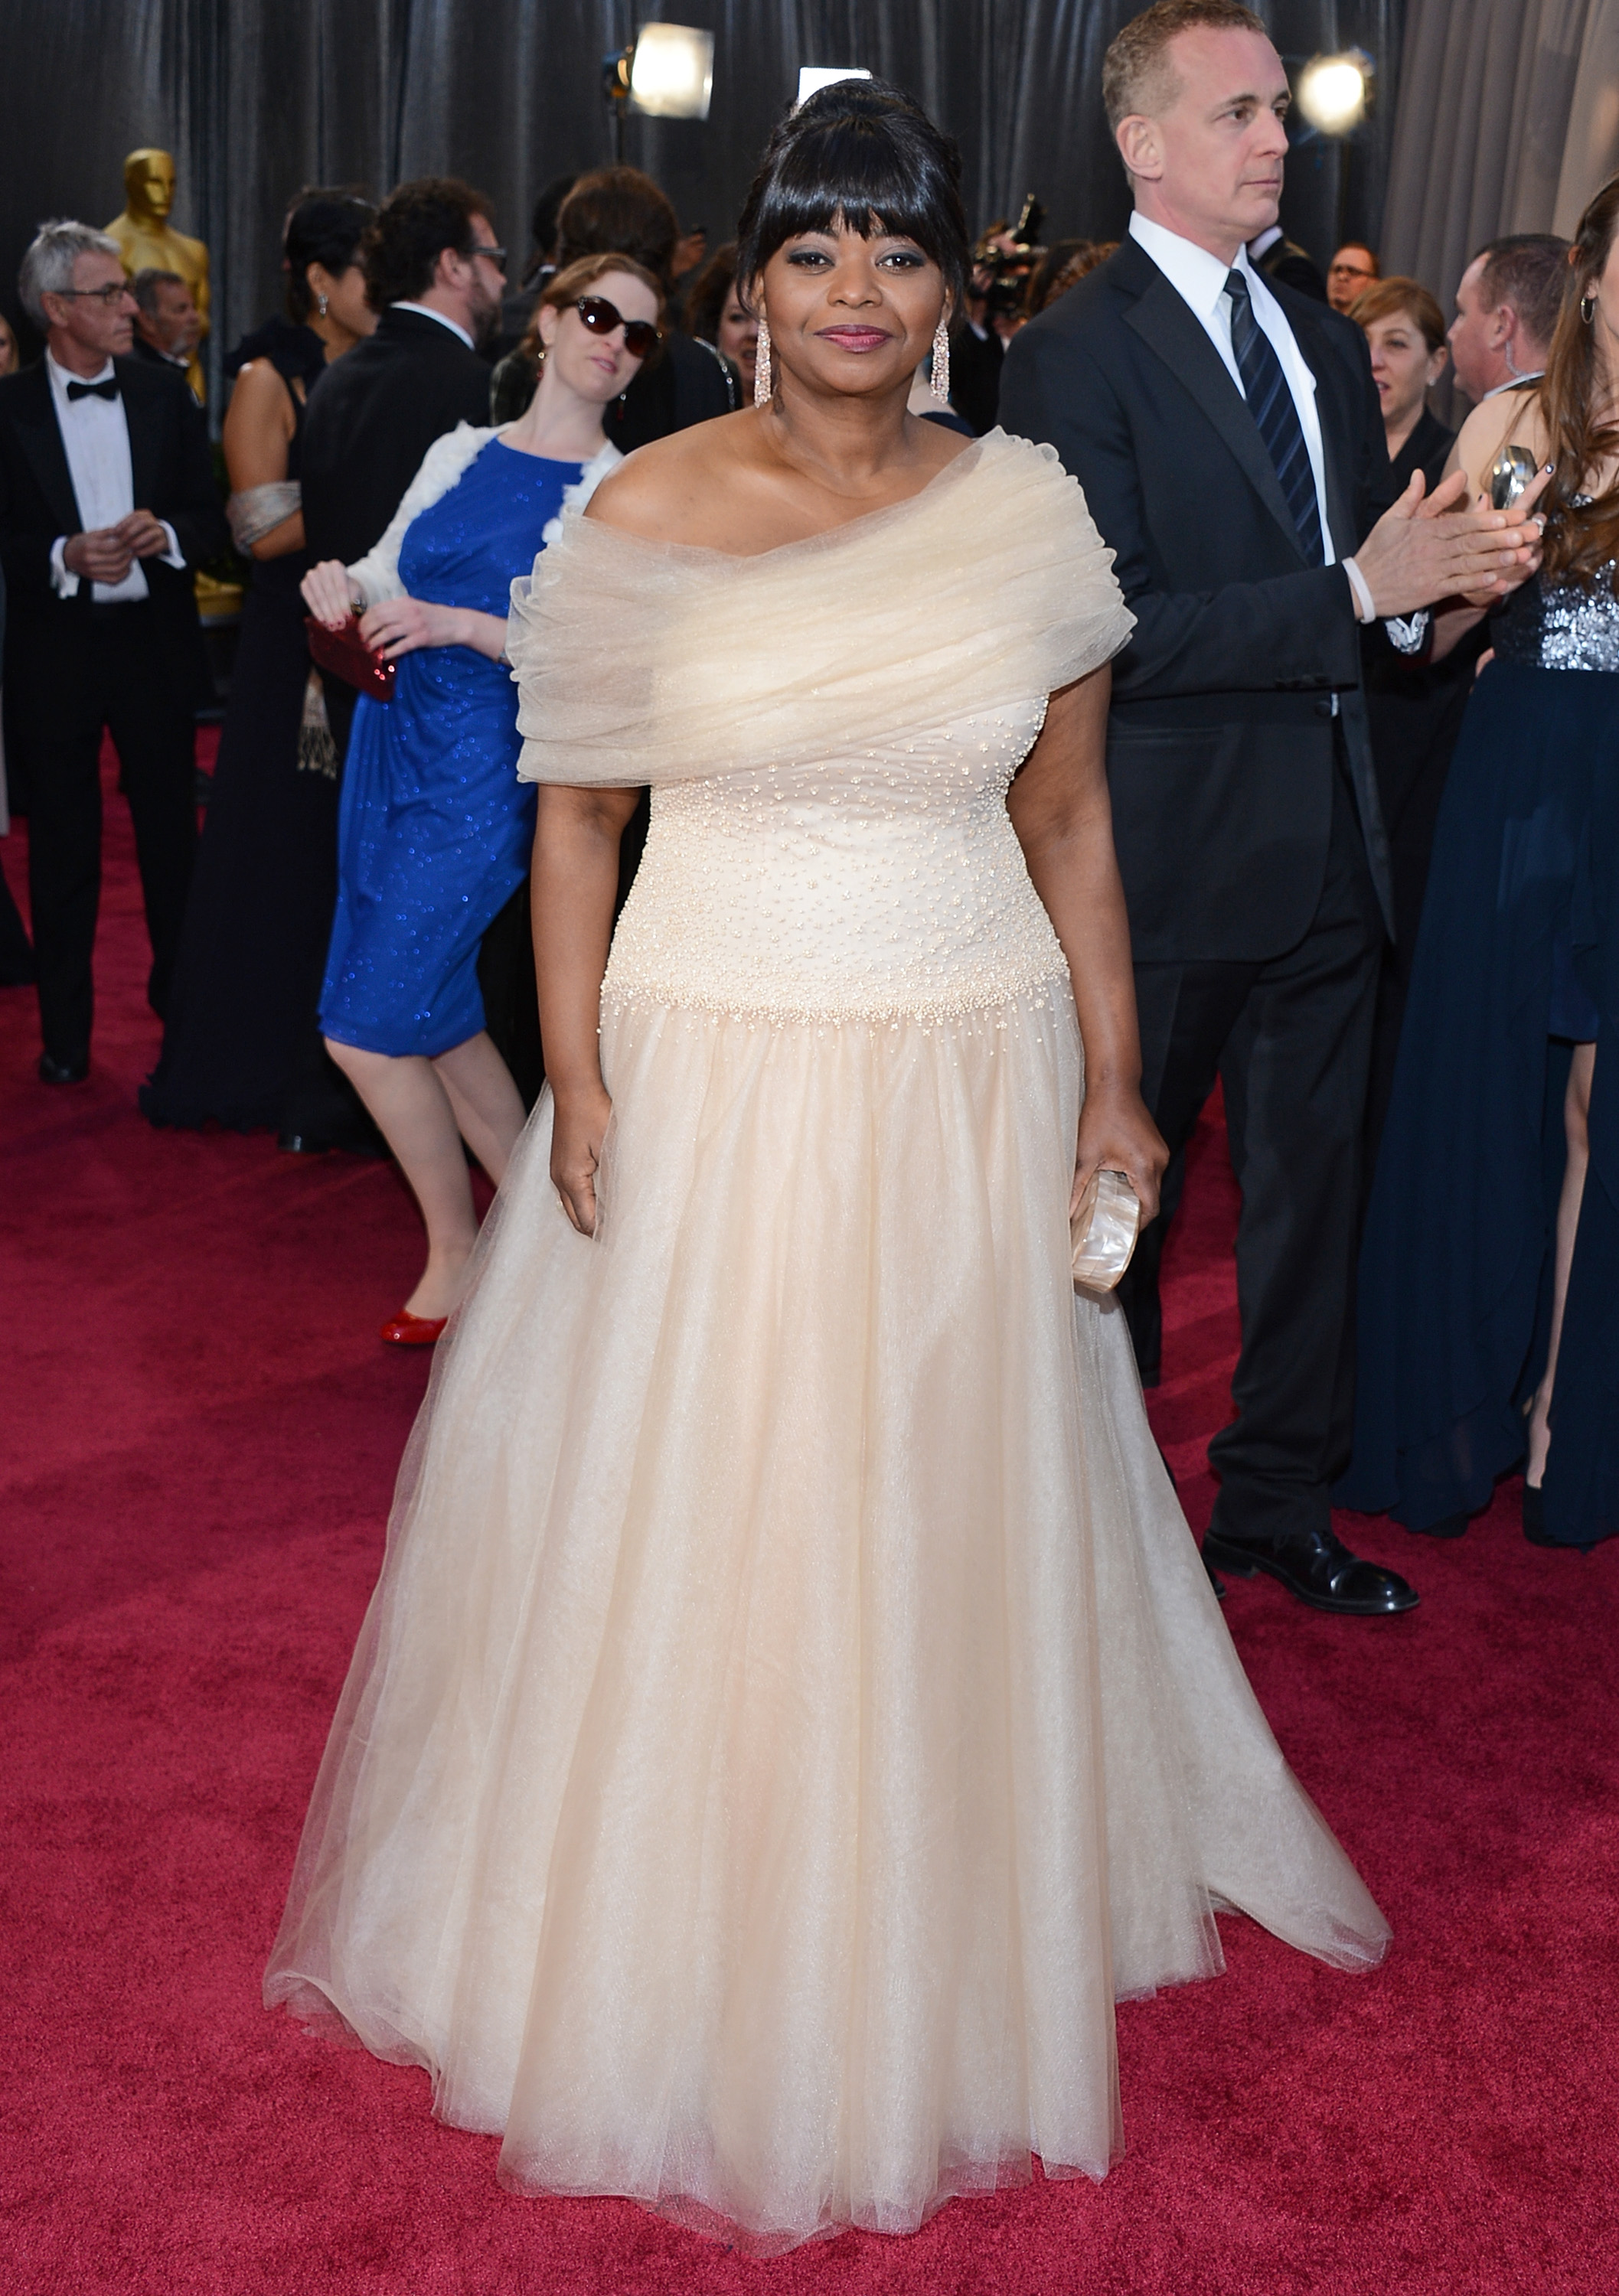 Octavia Spencer on the red carpet at the Oscars 2013.